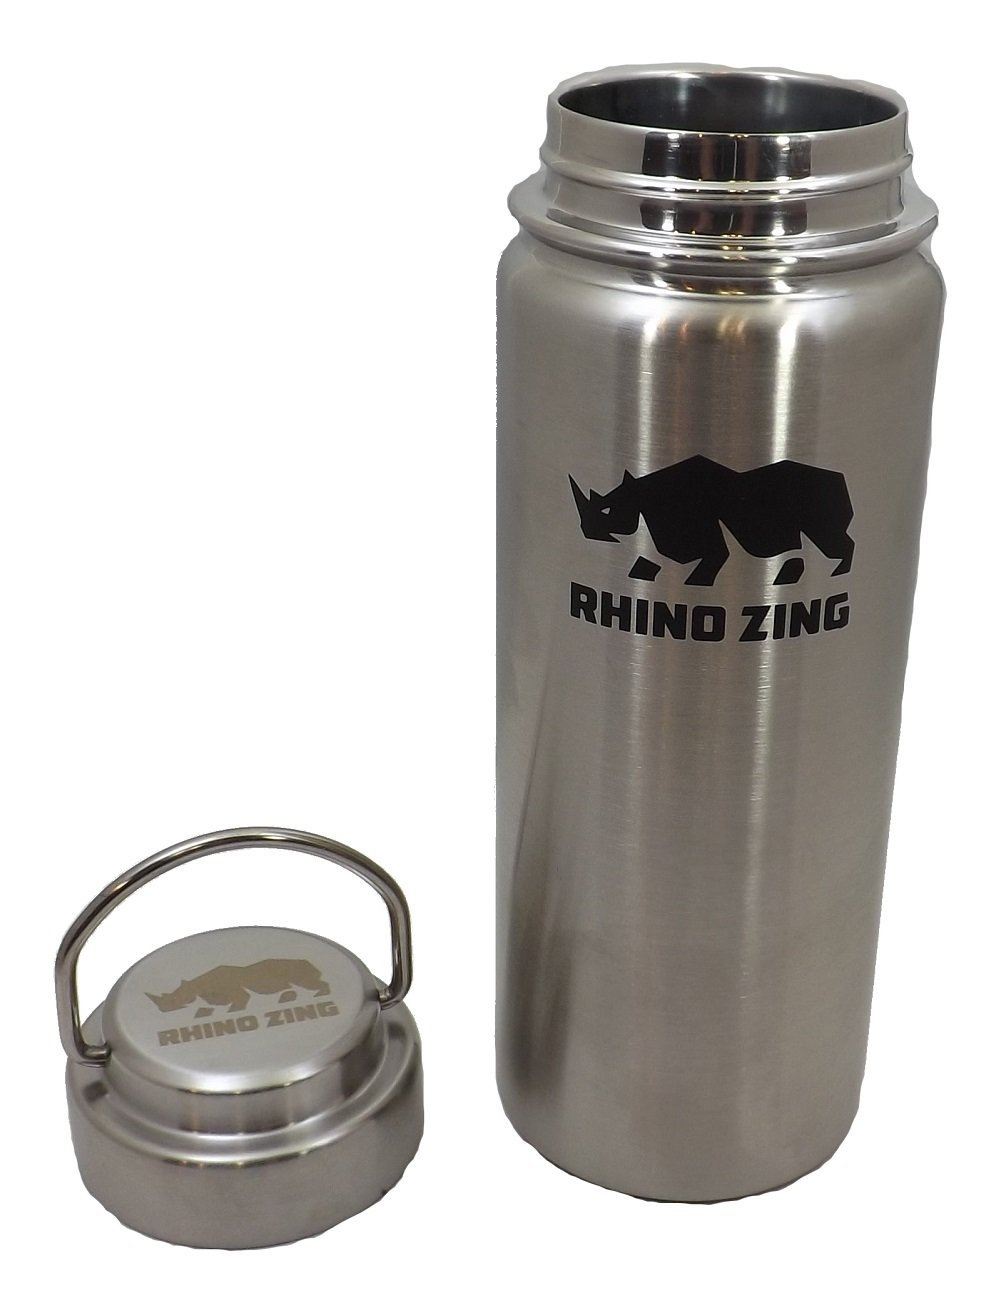 Rhino Zing 18-Ounce Beer Growler Stainless Steel Water Bottle with Stainless Steel Lid. Insulated, Wide Mouth by Rhino Zing (Image #4)